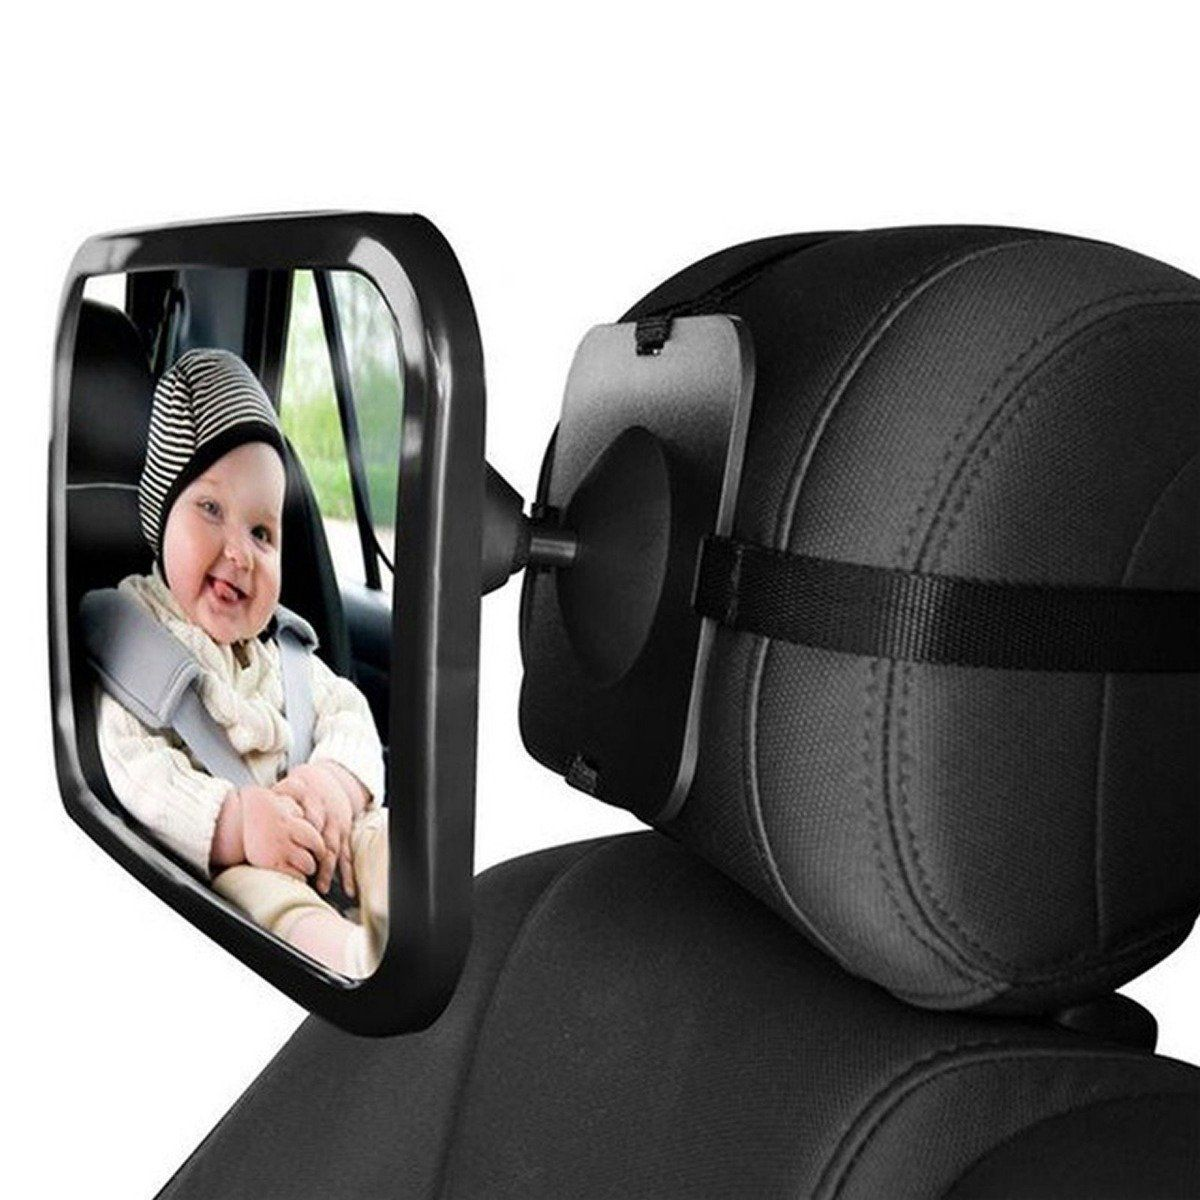 Backseat Baby Mirror